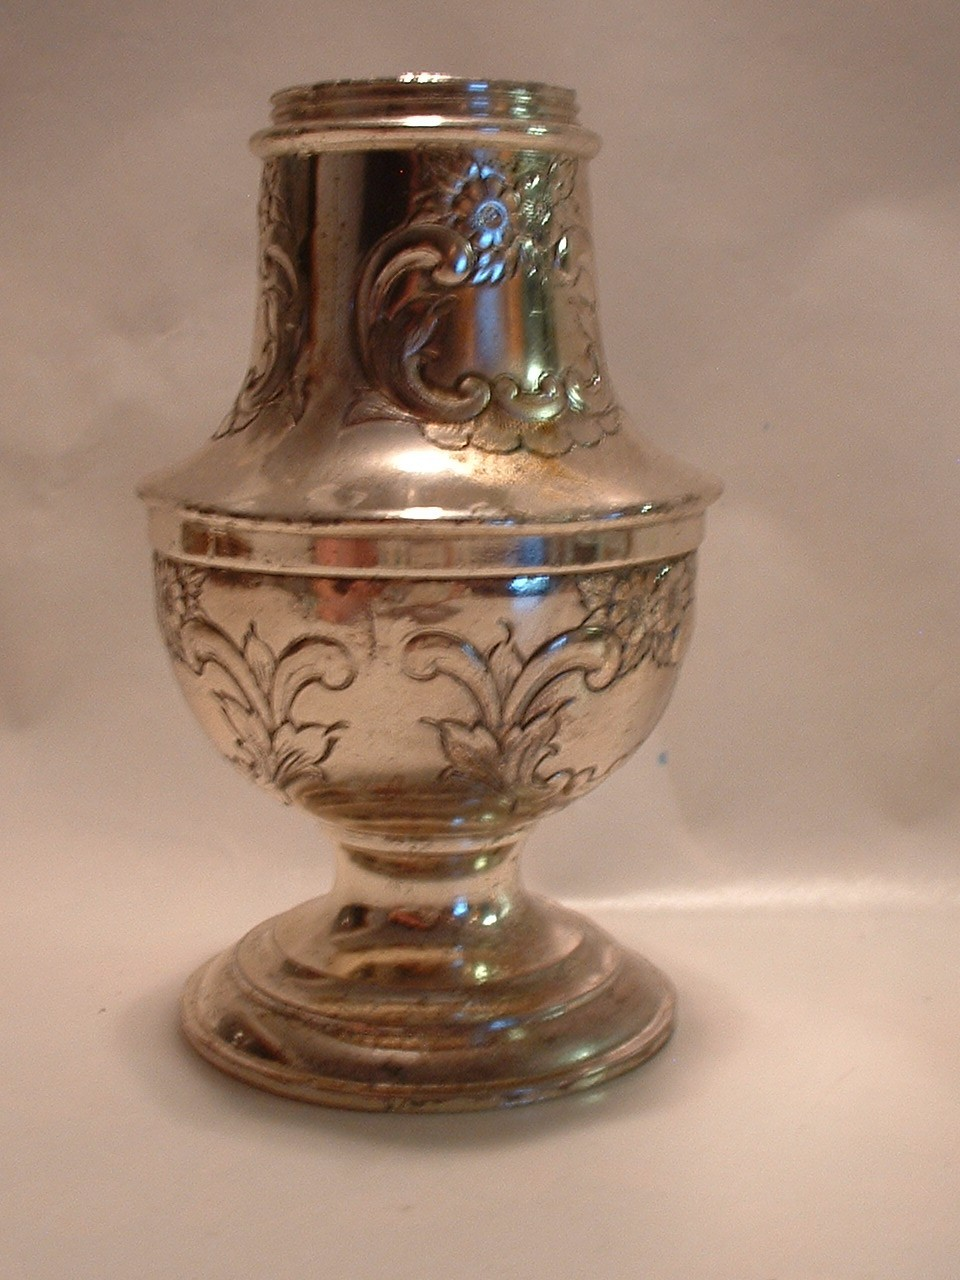 Vintage Antique Victorian Silverplated Muffineer Sugar Shaker